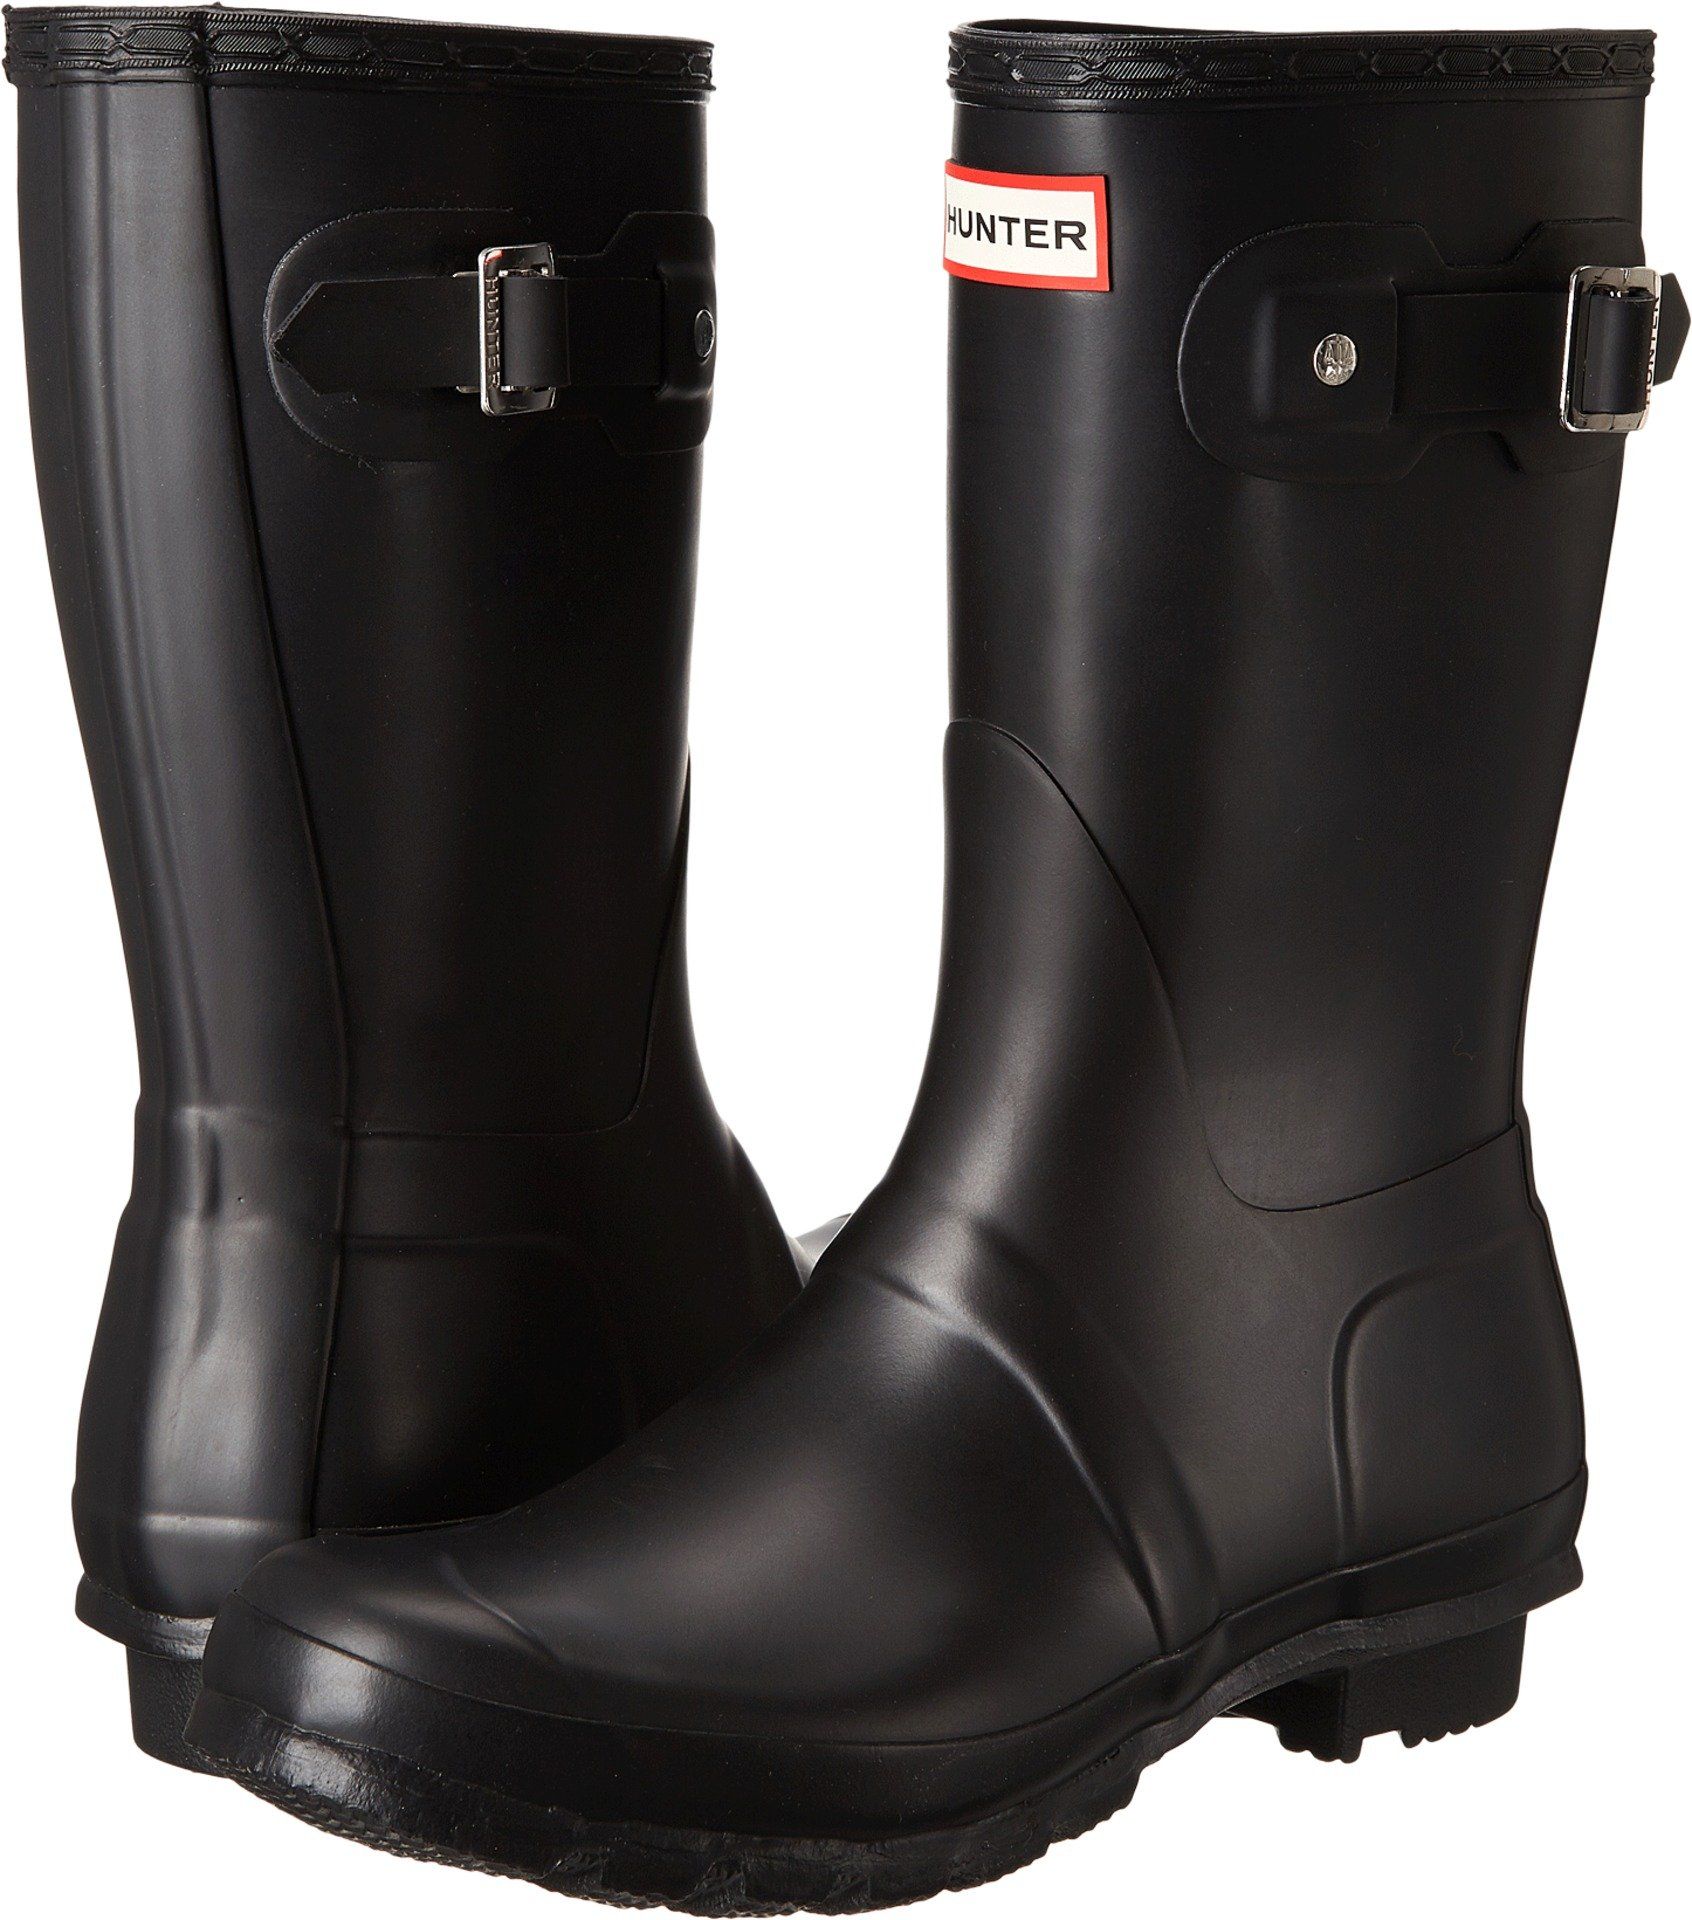 Hunter Women's Original Short Rain Boot,Black Matte,7 B(M) US by Hunter